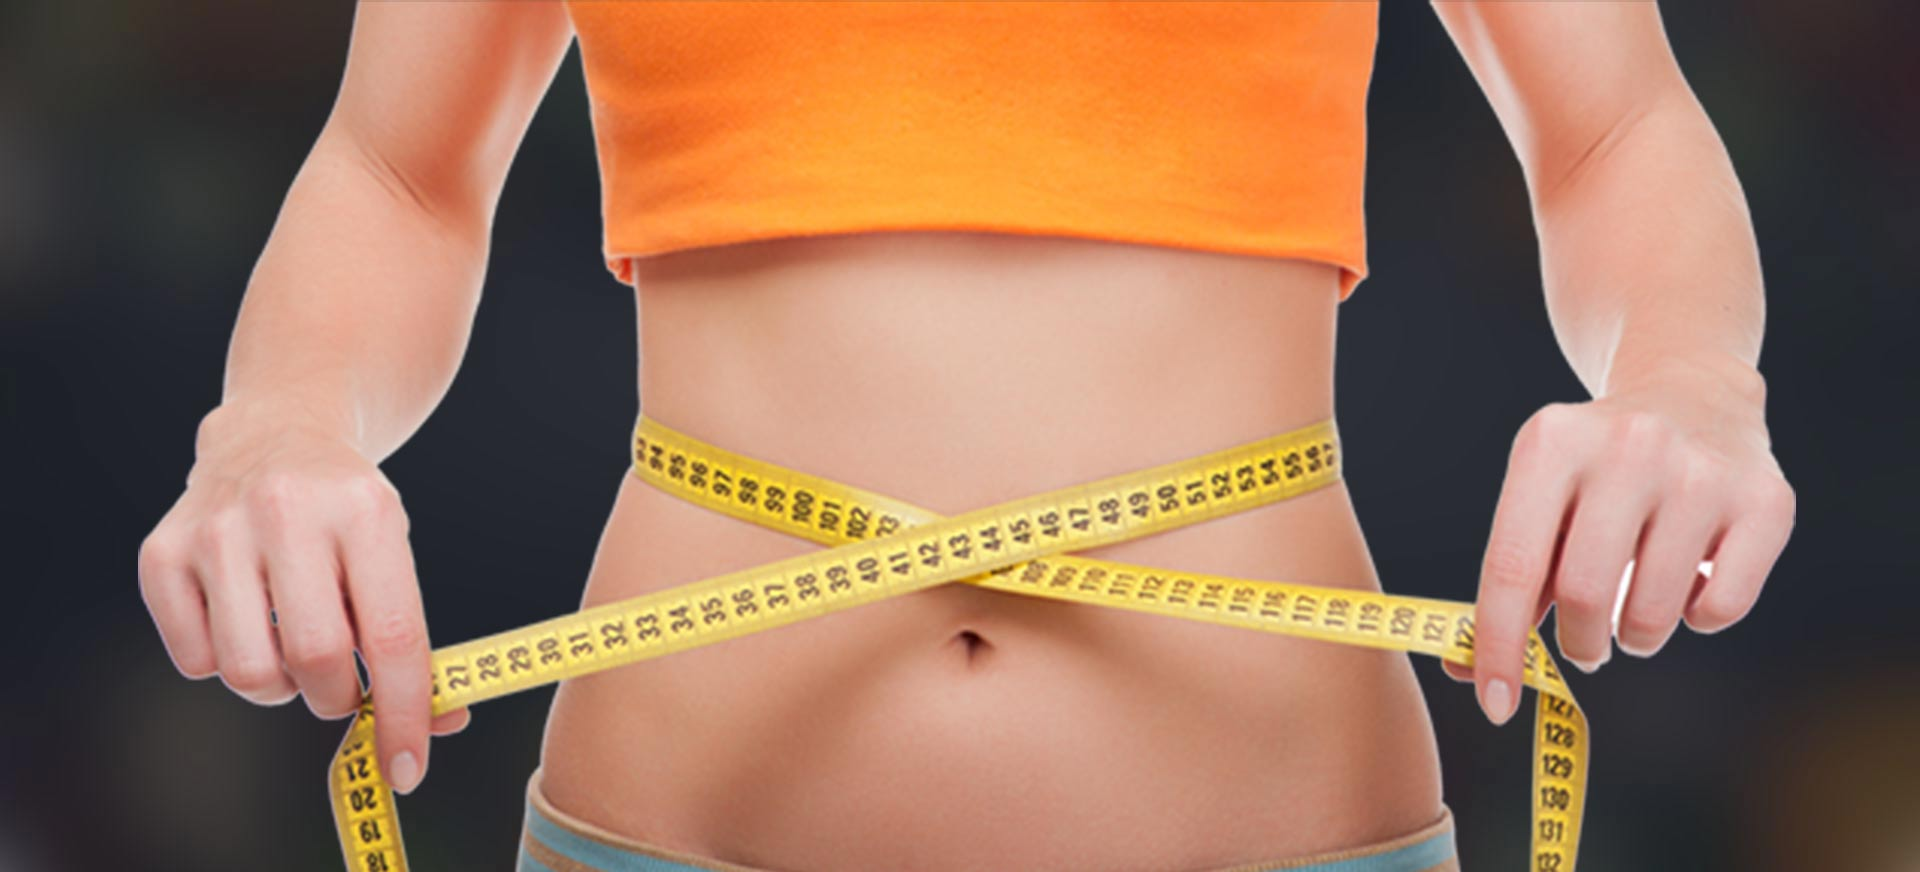 Indian diet plan for weight loss : Try these tips to Good health